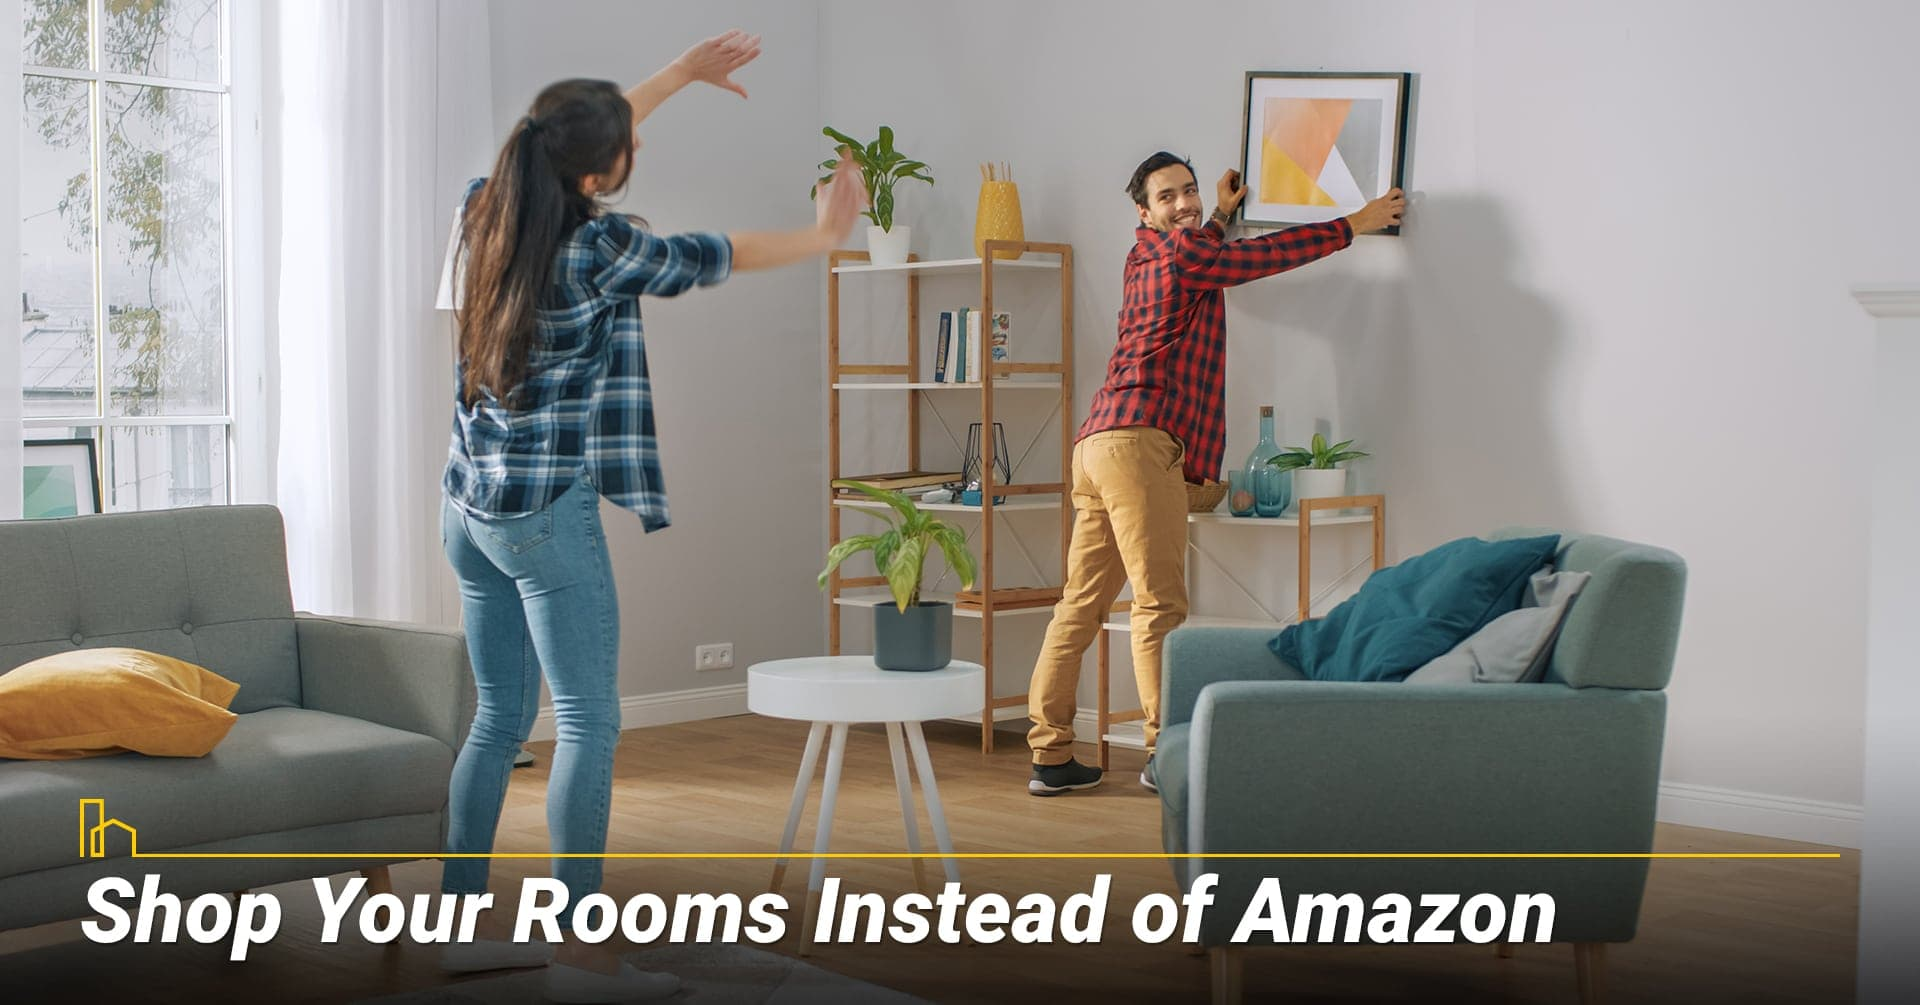 Shop Your Rooms Instead of Amazon, re-purpose existing items or furniture around the house